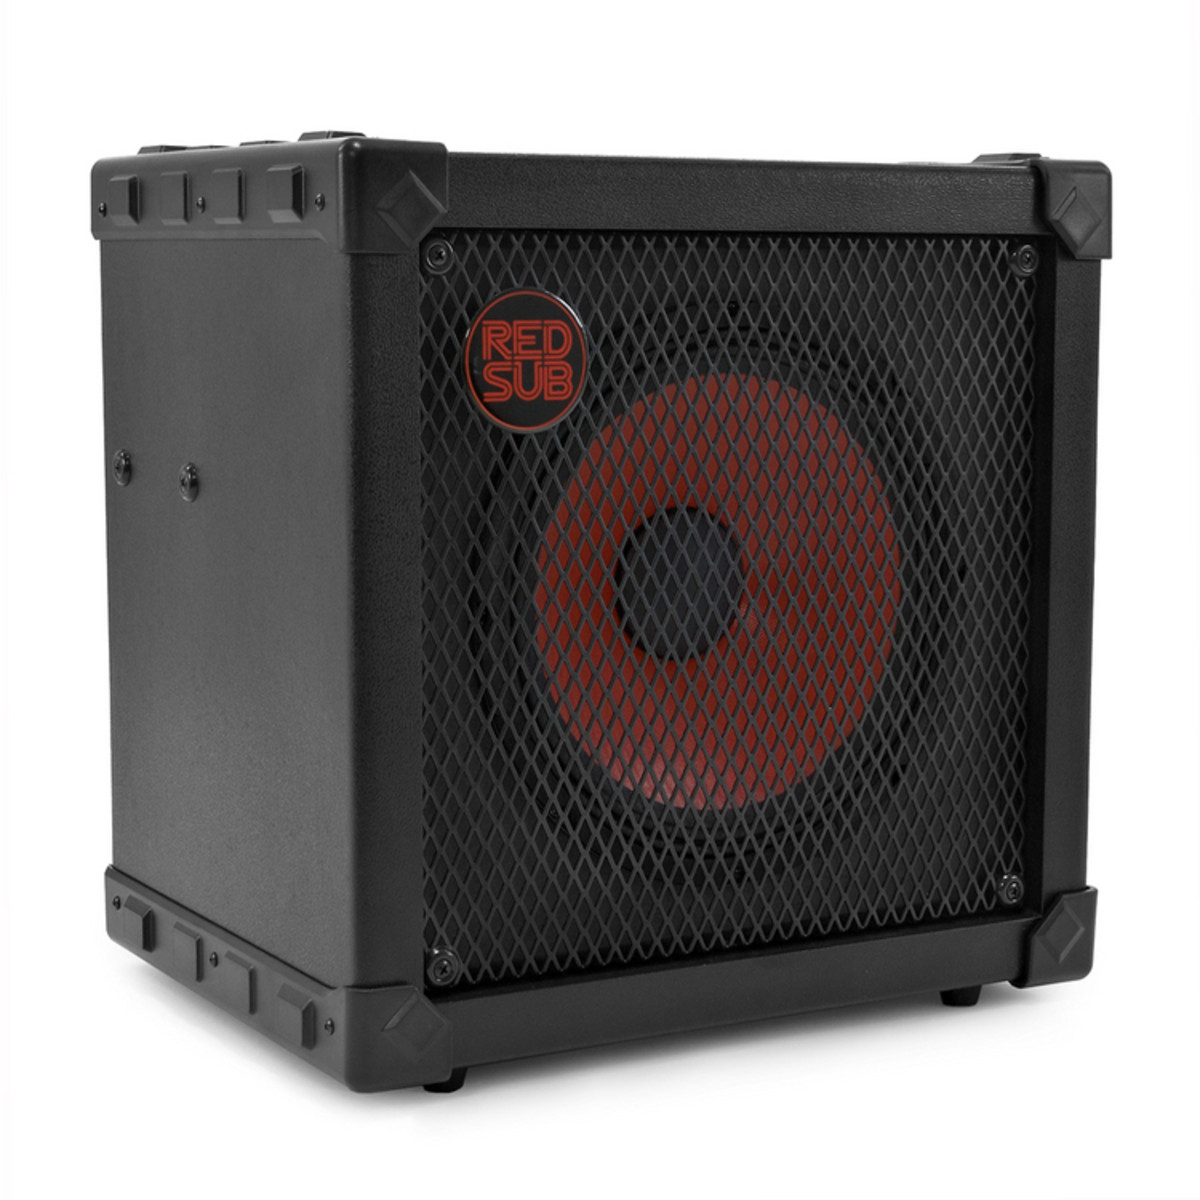 redsub be50 50w bass guitar amp at gear4music. Black Bedroom Furniture Sets. Home Design Ideas